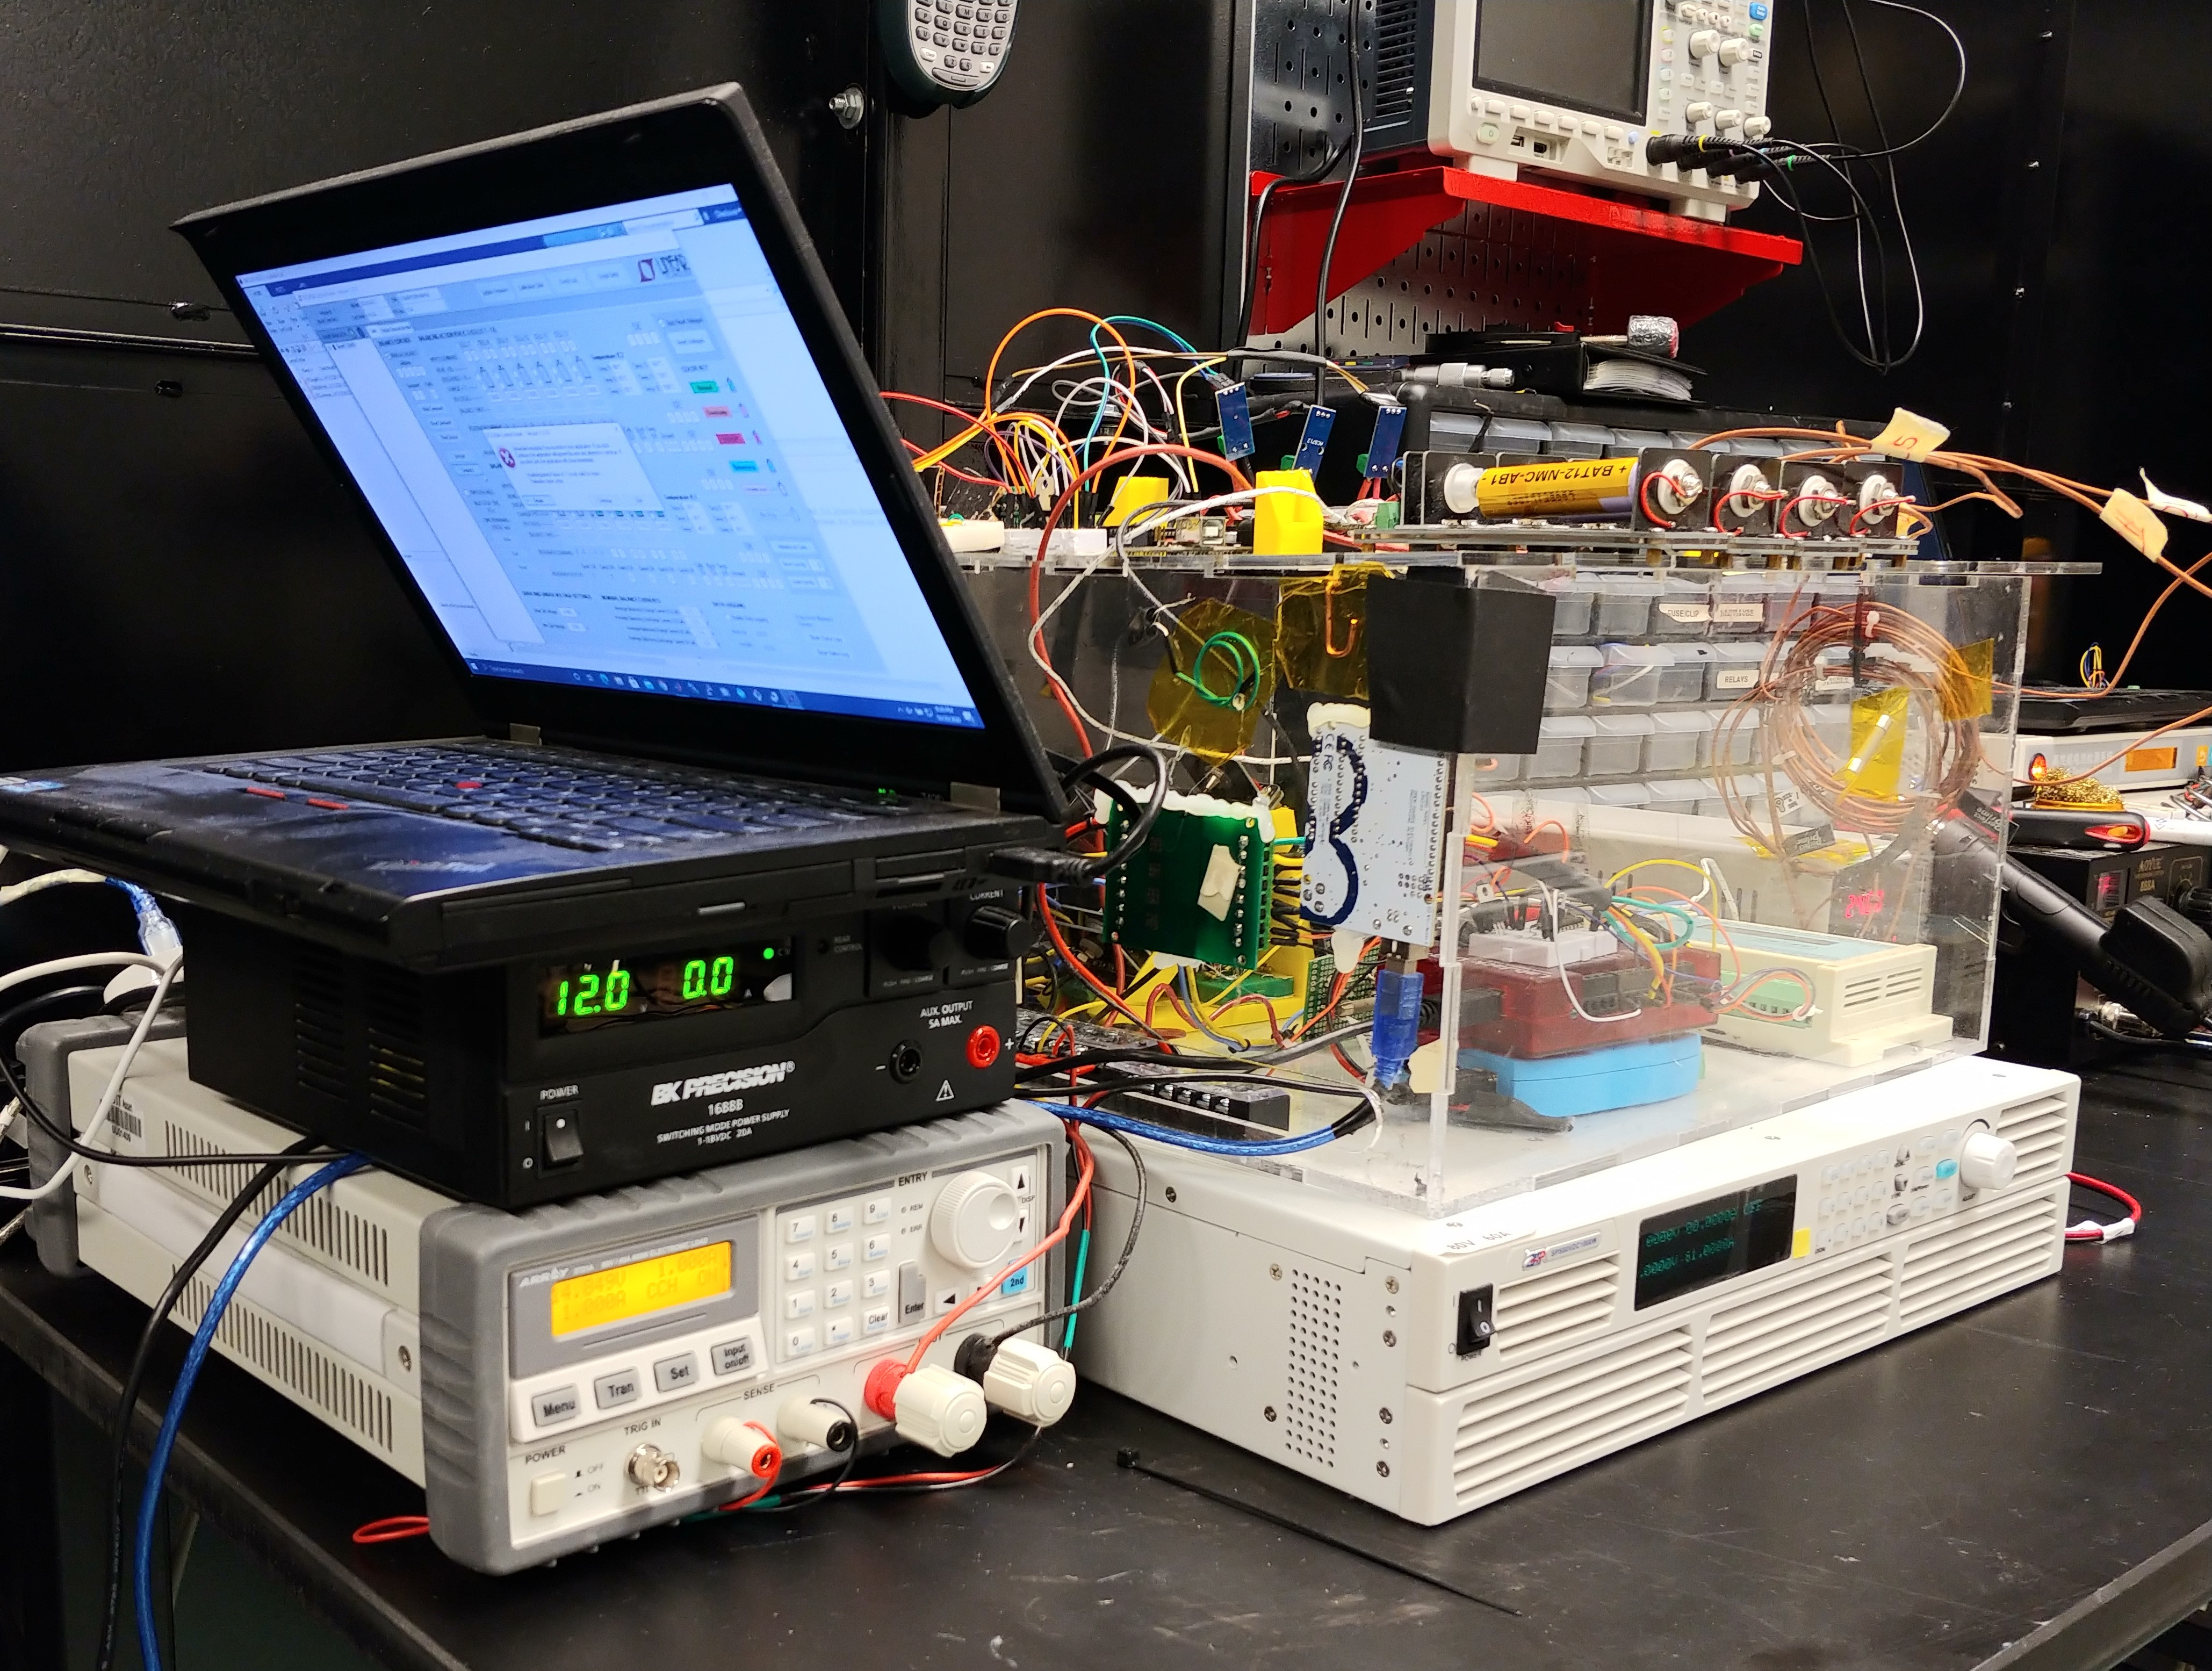 An image of the battery testing workstation box.